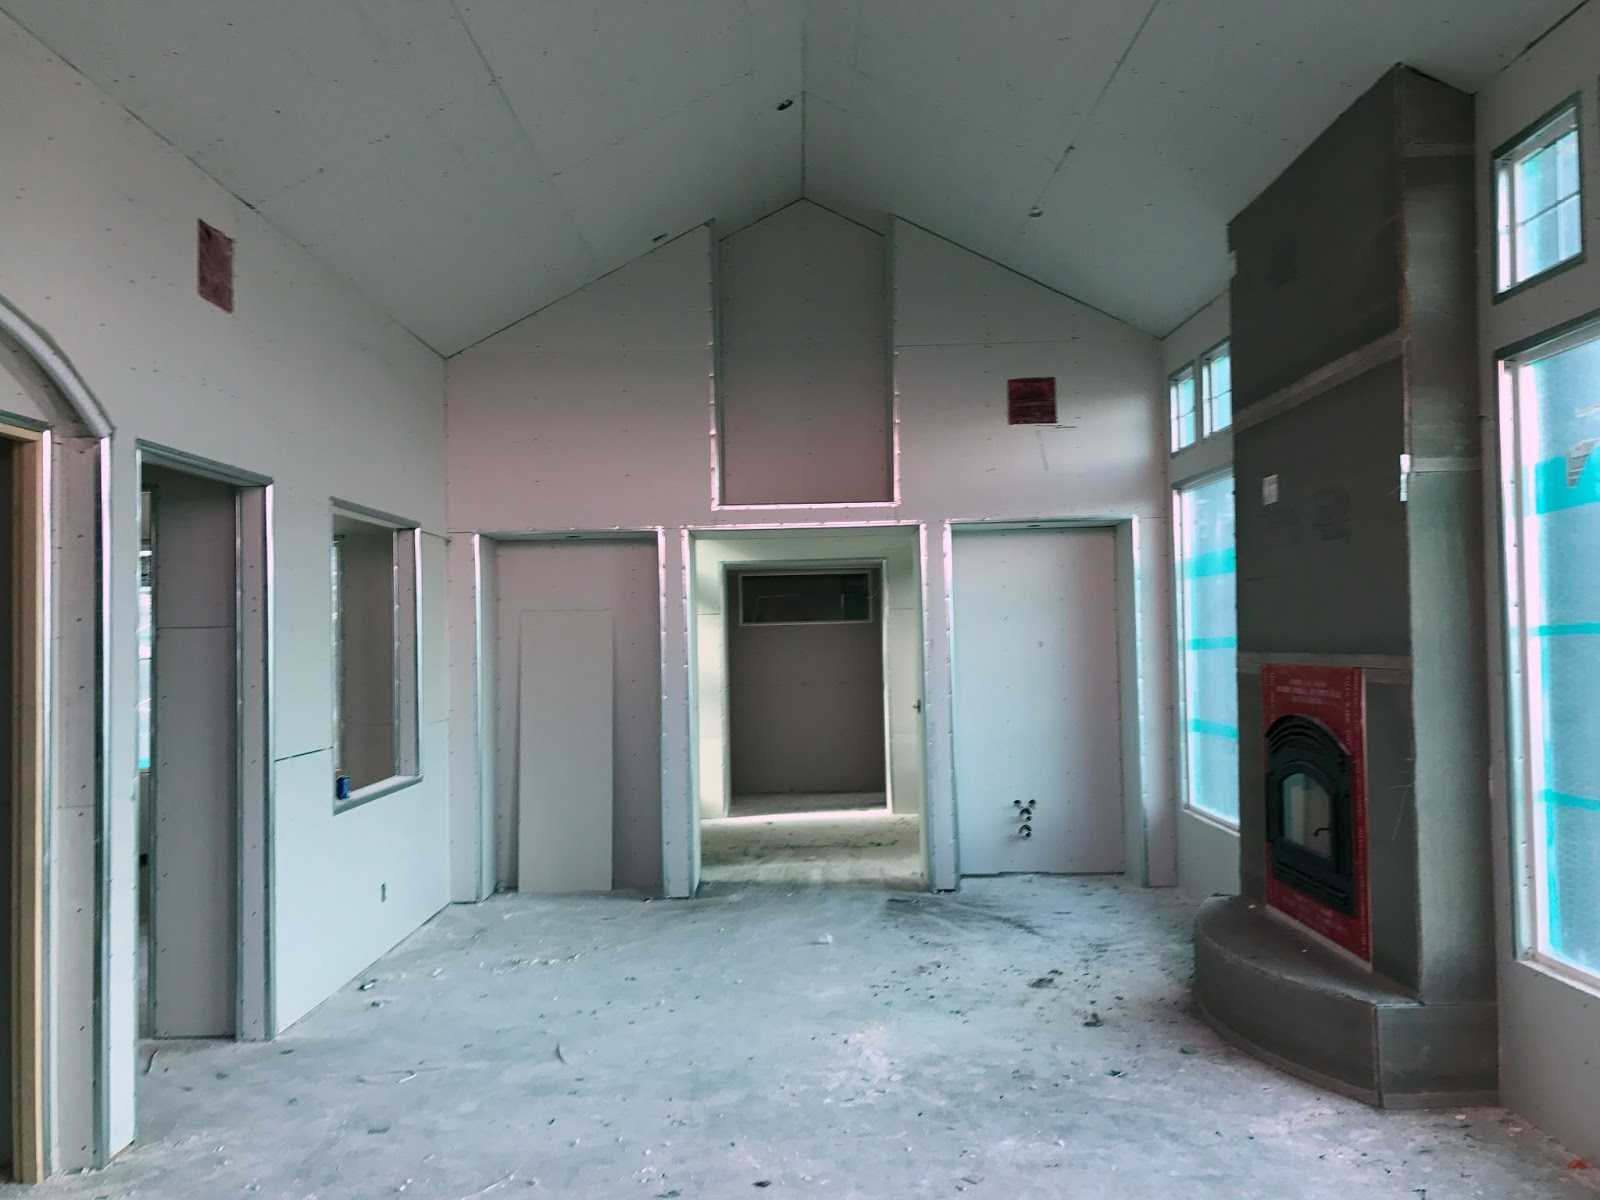 Construction Update: Drywall